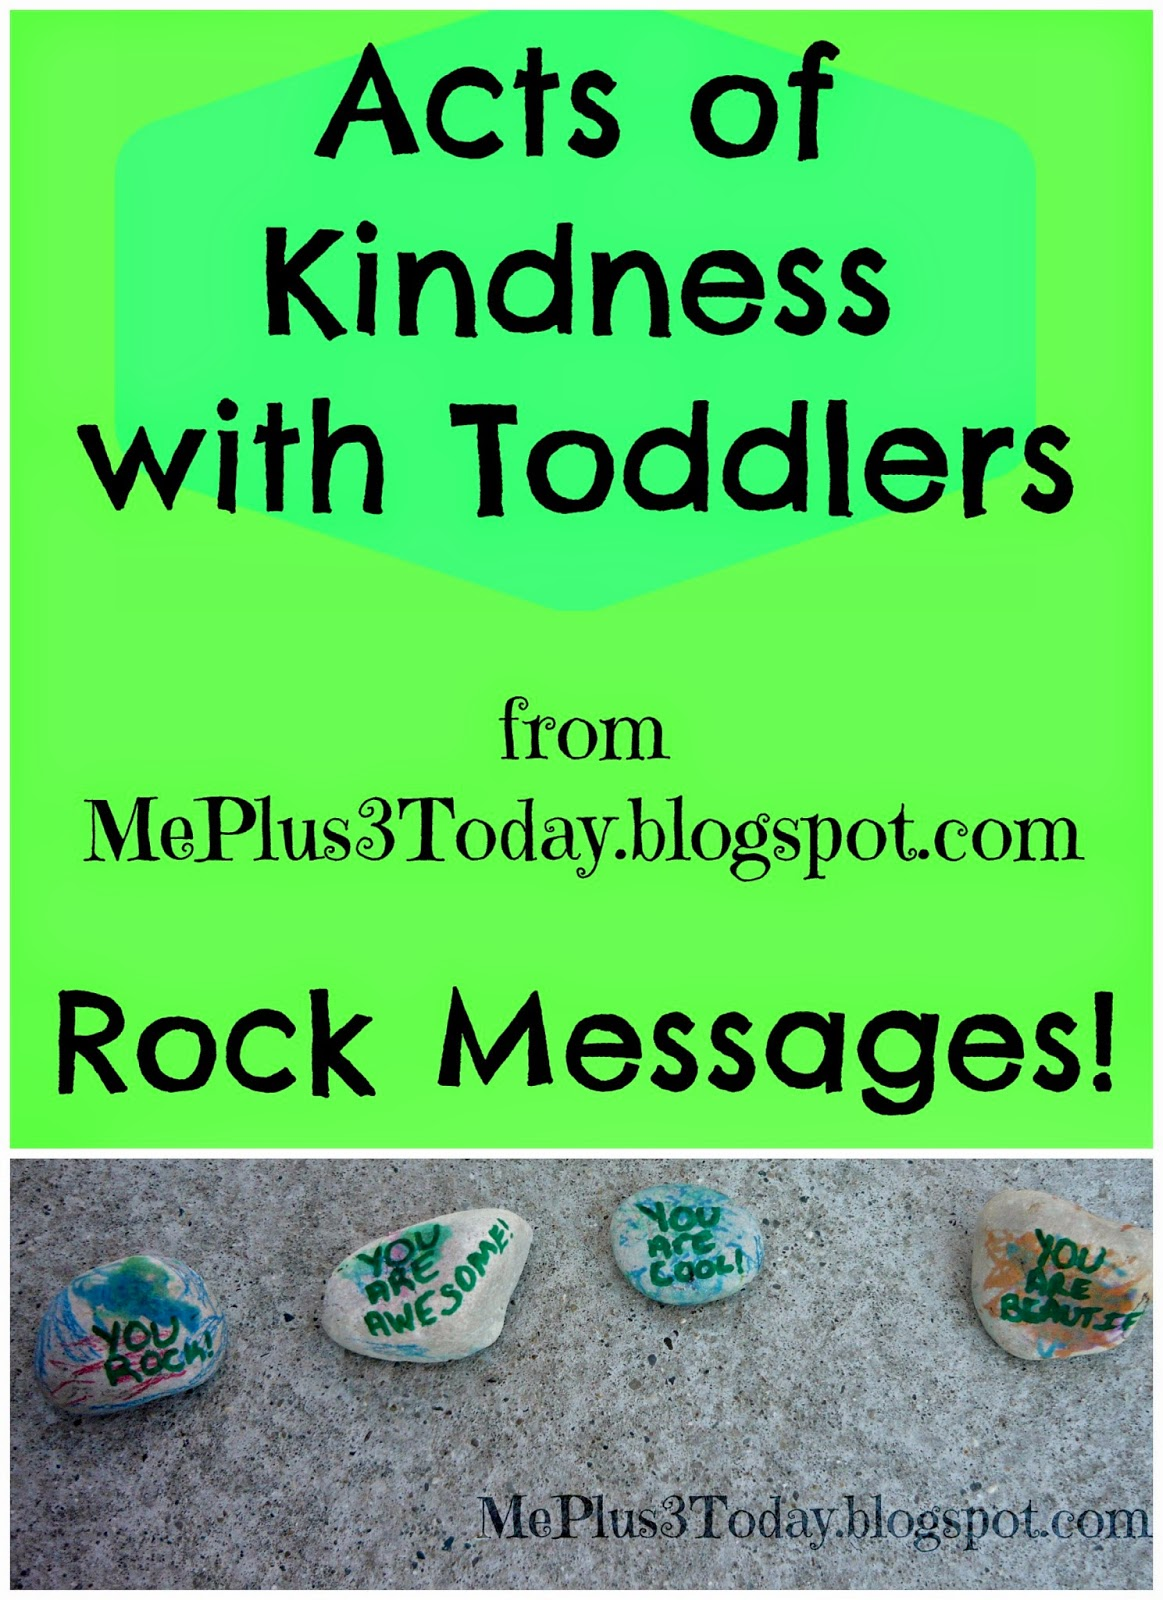 Acts of Kindness with Toddlers from MePlus3Today.blogspot.com - Rock Messages